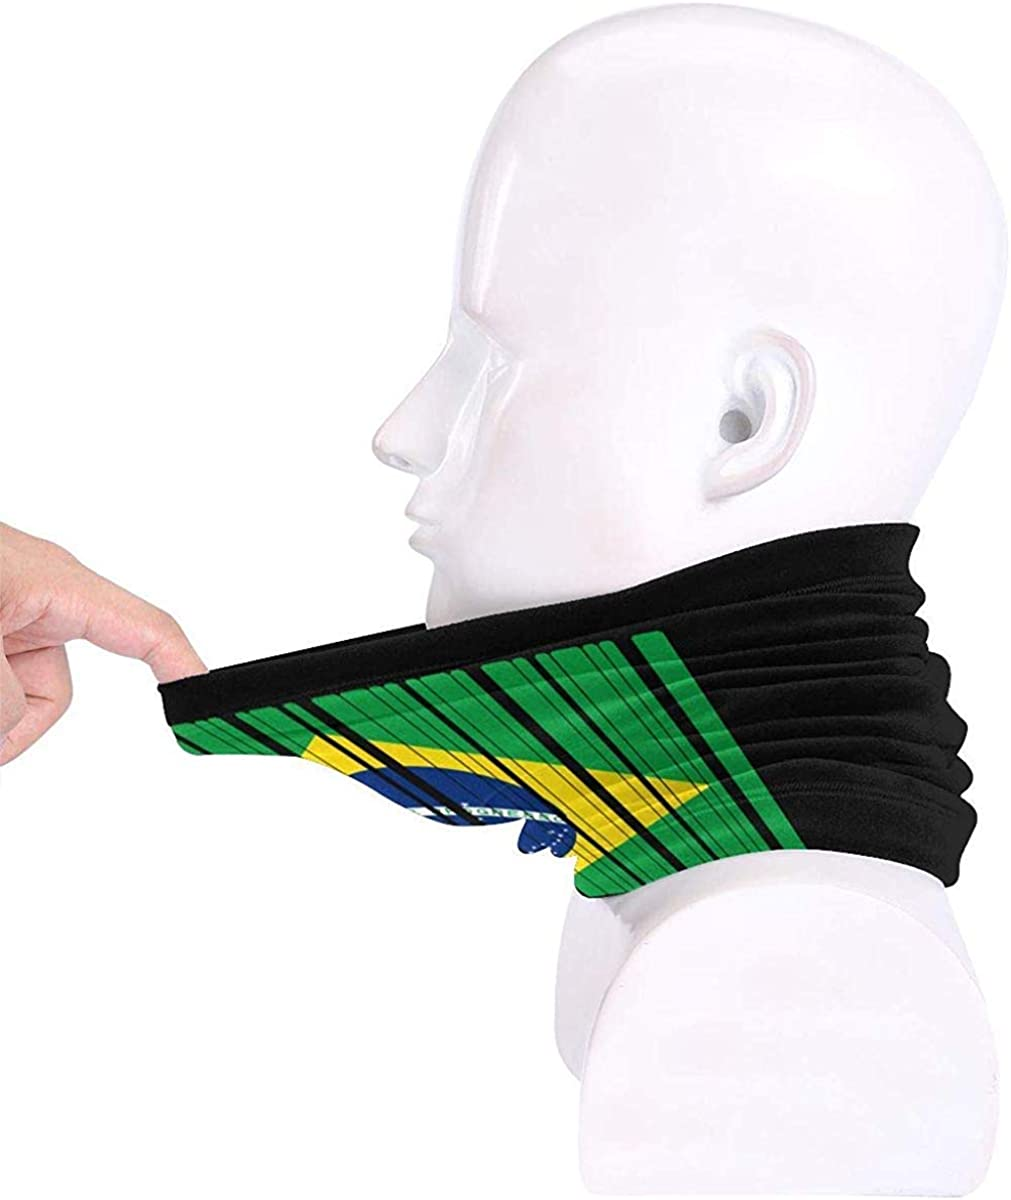 Brazil Flag Barcode Microfiber Neck Warmer Balaclavas Soft Fleece Headwear Face Scarf Mask for Winter